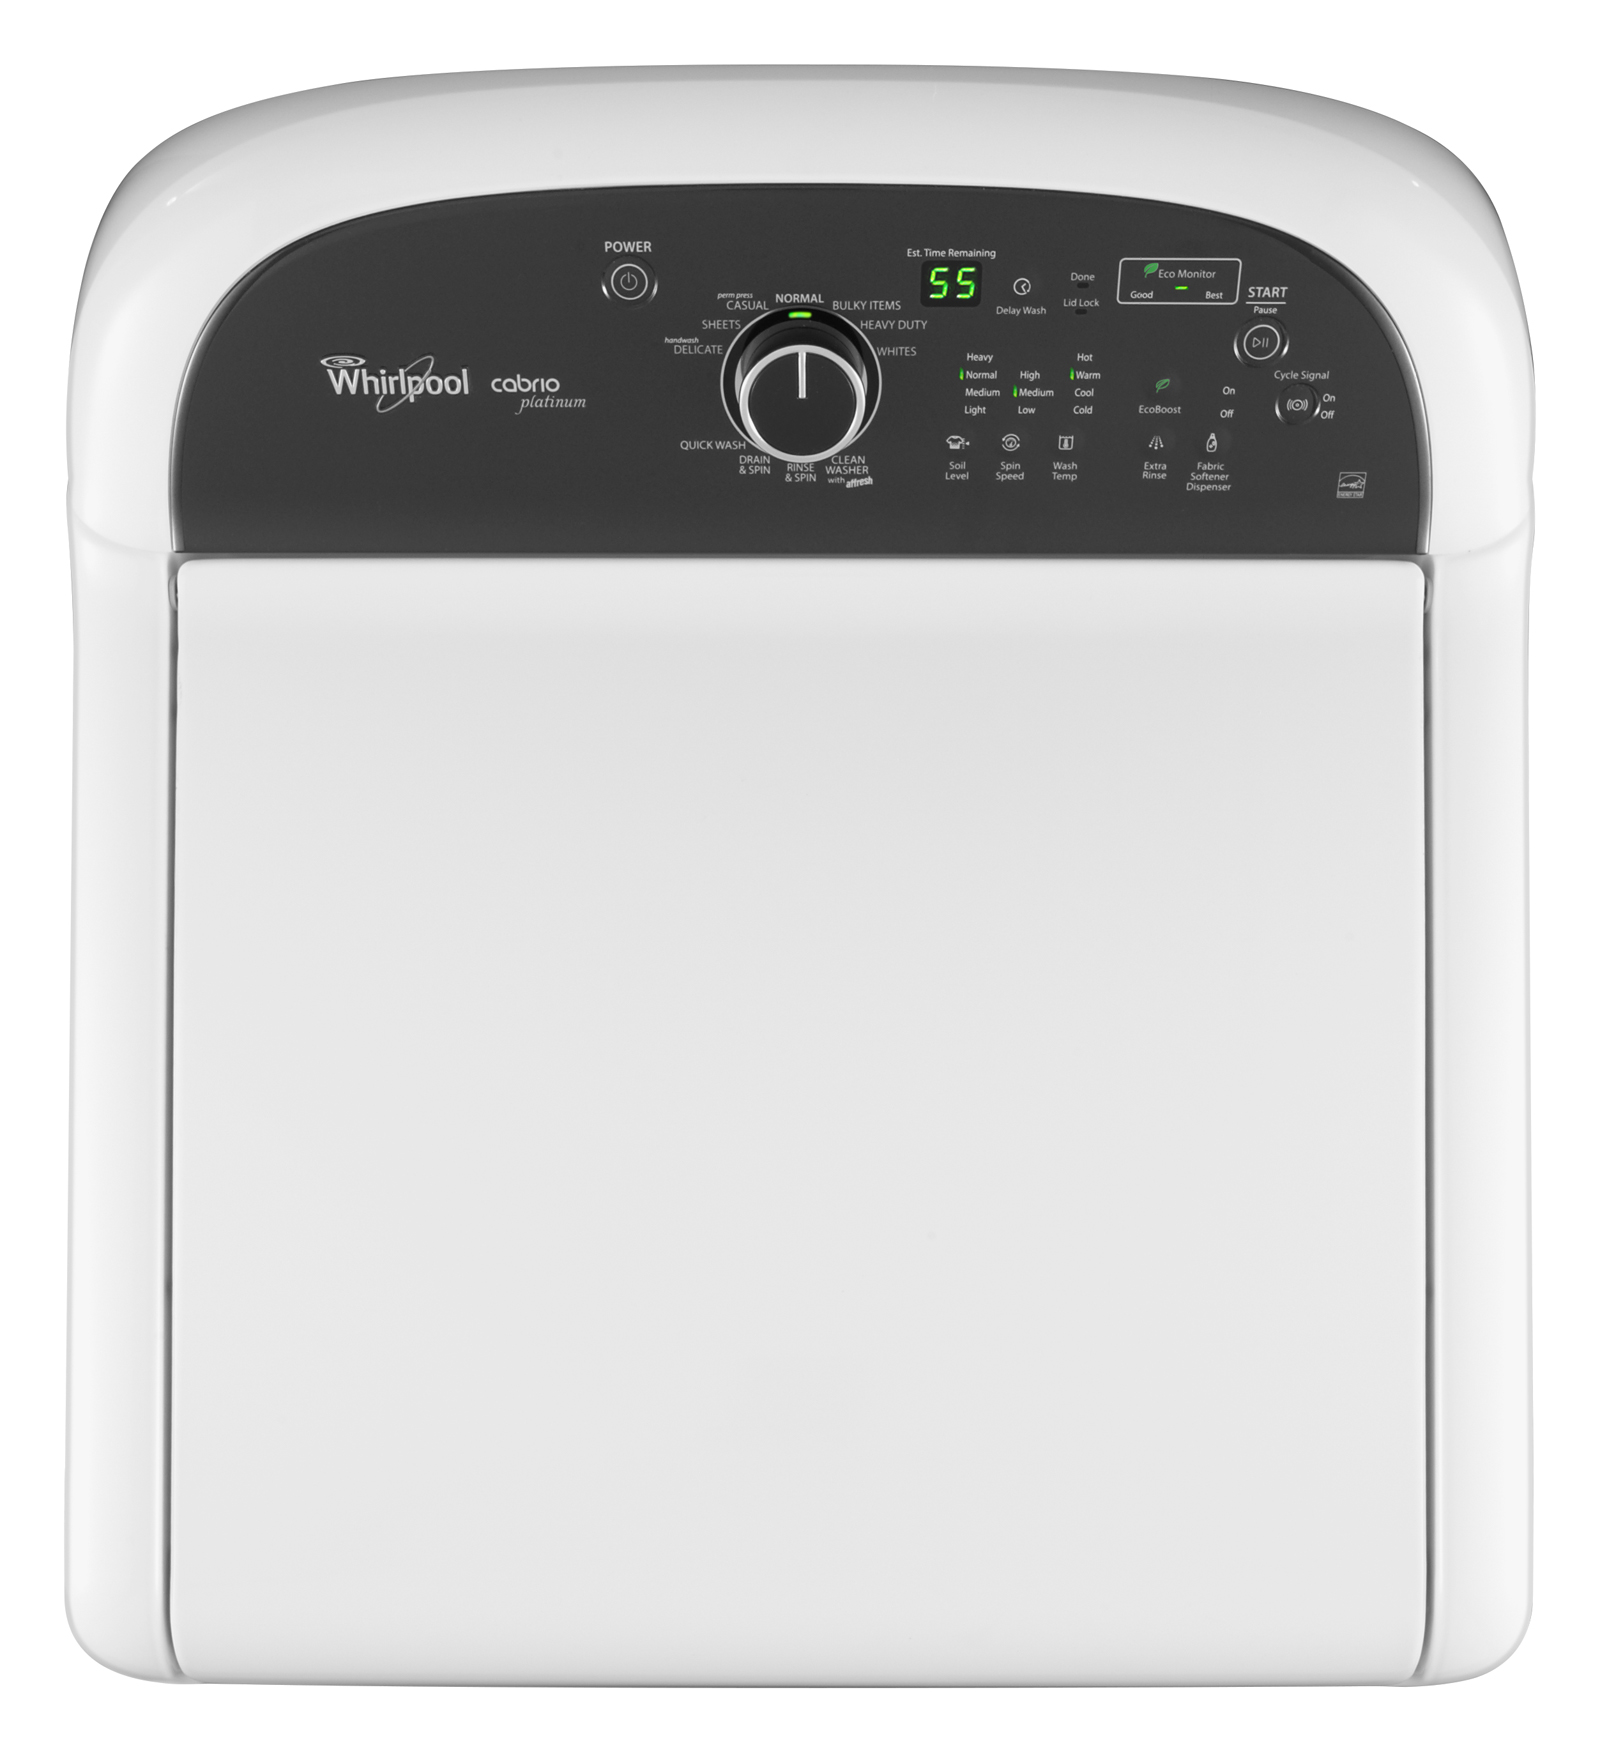 Whirlpool 4.5 cu. ft. Cabrio® Platinum HE Top-Load Washer w/ Precision Dispense Plus - White